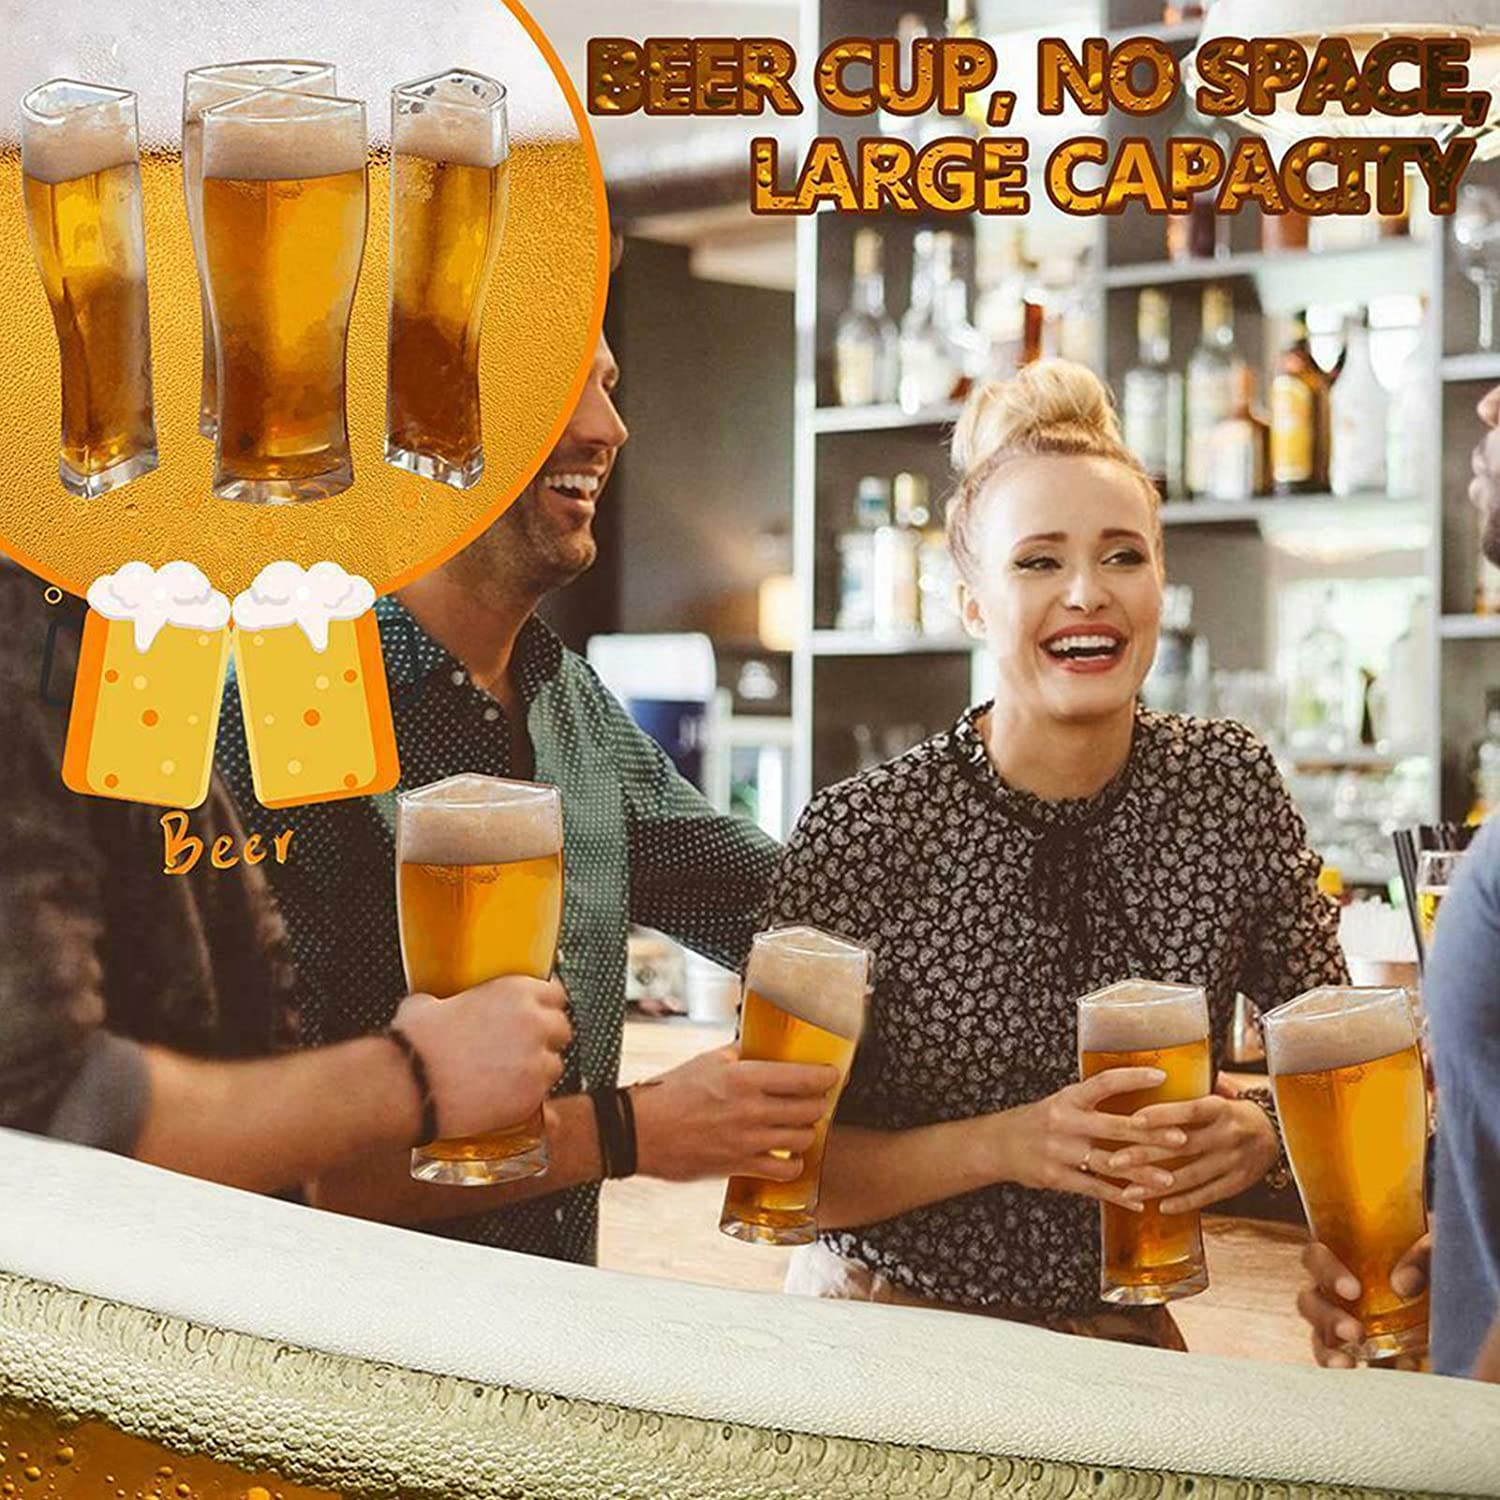 4 in 1 Acrylic Plastic Material Friends Party Holiday Birthday Drink Beer Mug 1pcs Super Schooner Designed to Let You Easily Carry 4 Beer Glasses at Once